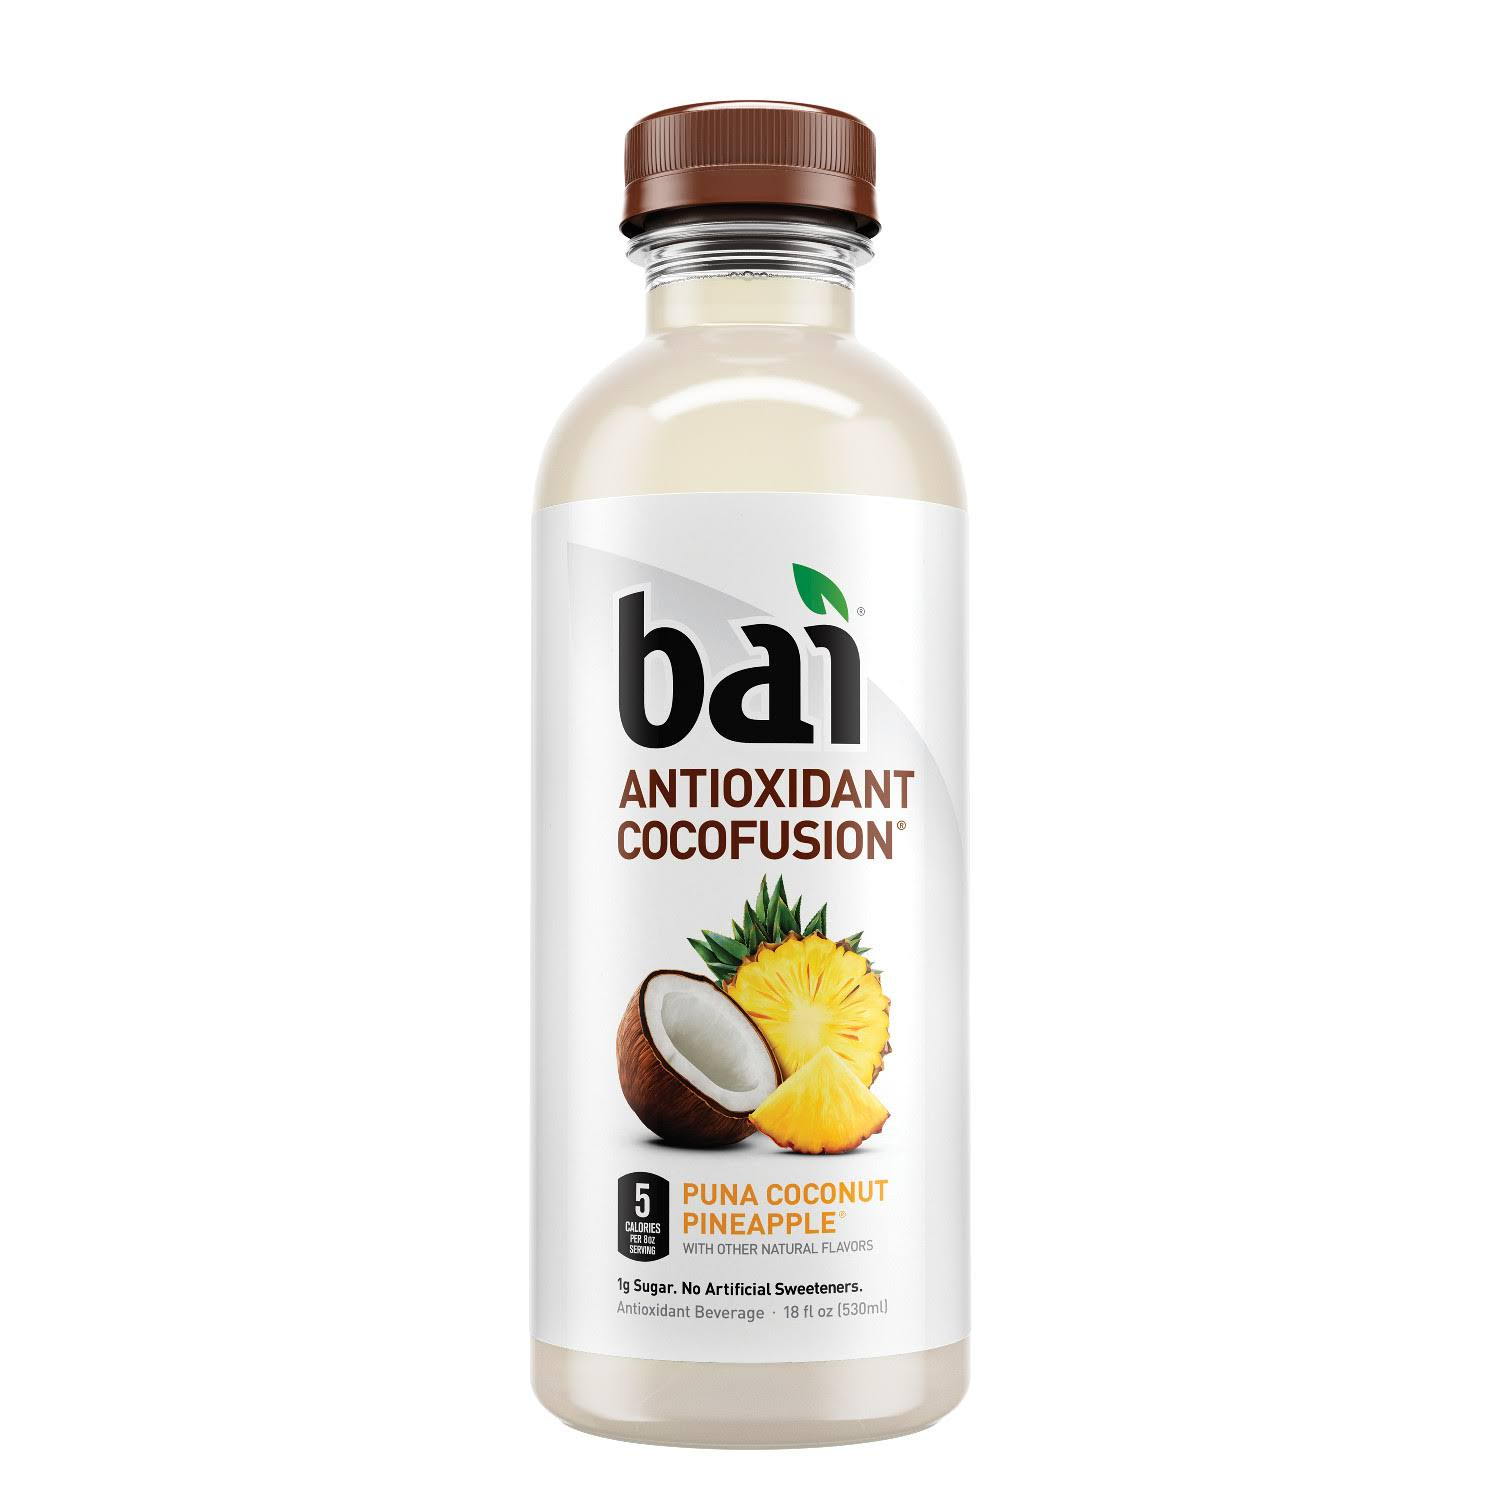 Bai Cocofusions Puna Coconut Pineapple, Antioxidant Infused Beverage, 18 fl oz bottle